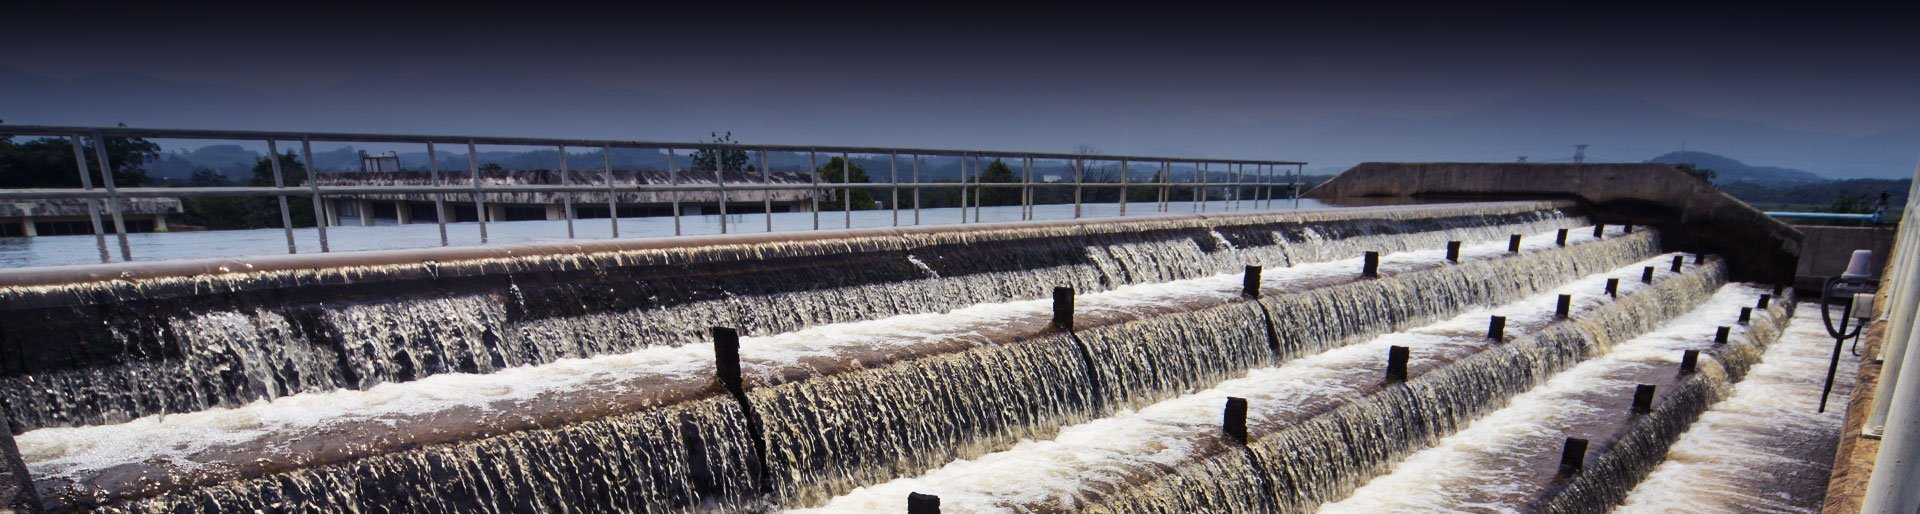 Water Regulating Dam, Water Treatment and Power Plant Header Image